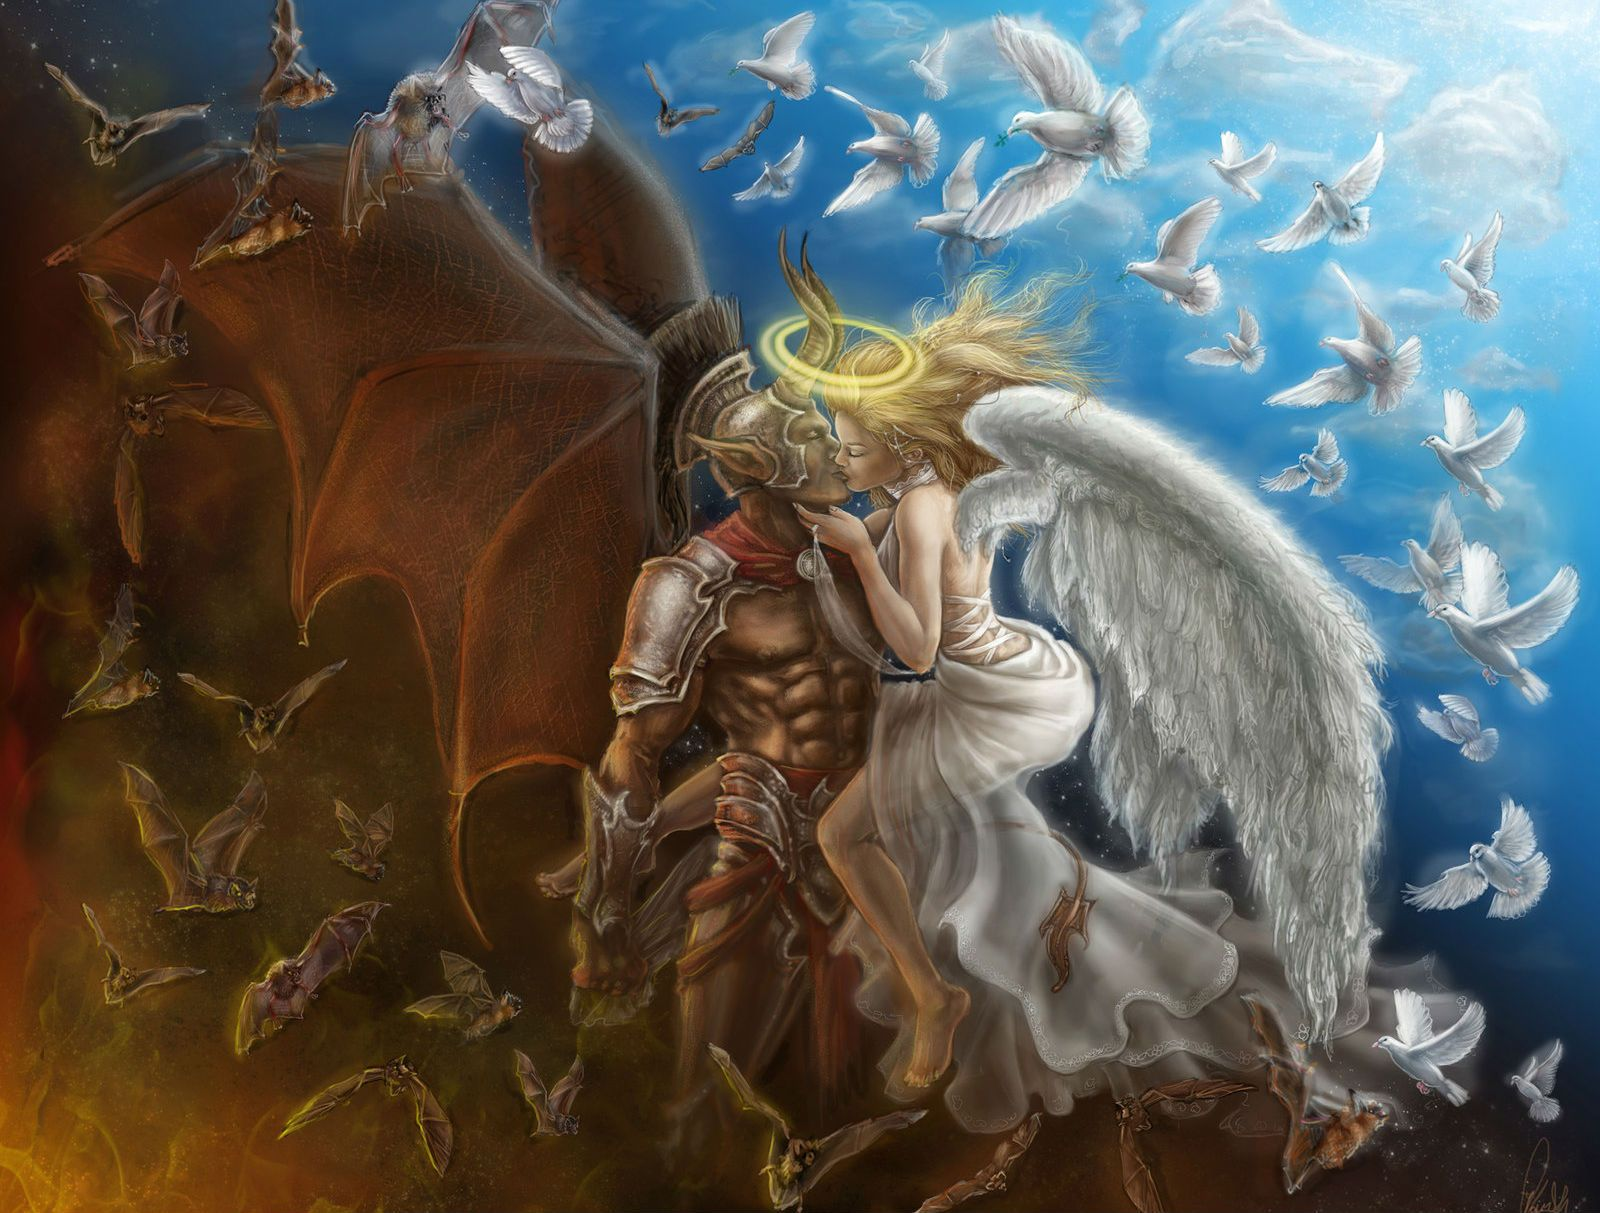 blonde angel and demon love | alpha coders | wallpaper abyss fantasy